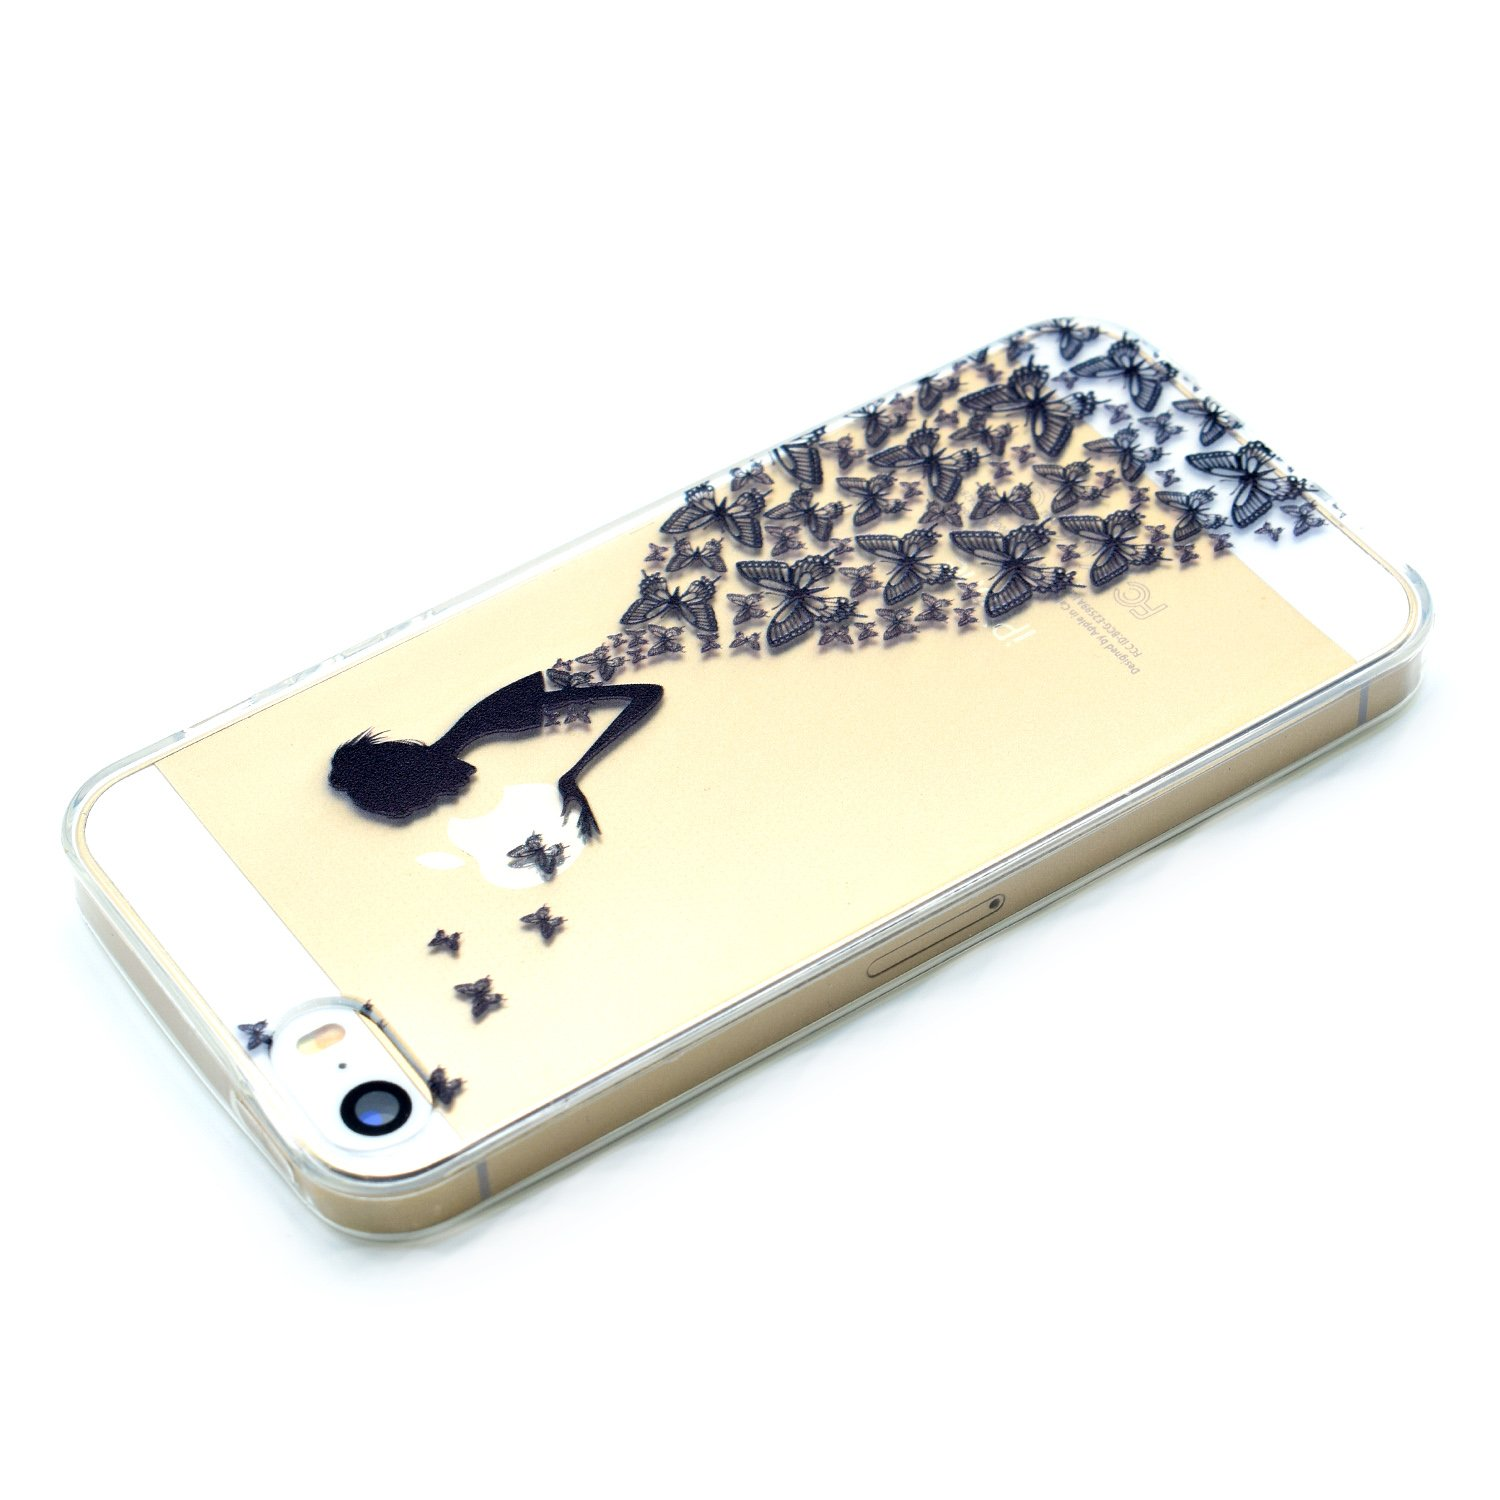 Funluna Cover iPhone 6s / iPhone 6 Silicone Morbido Custodia in